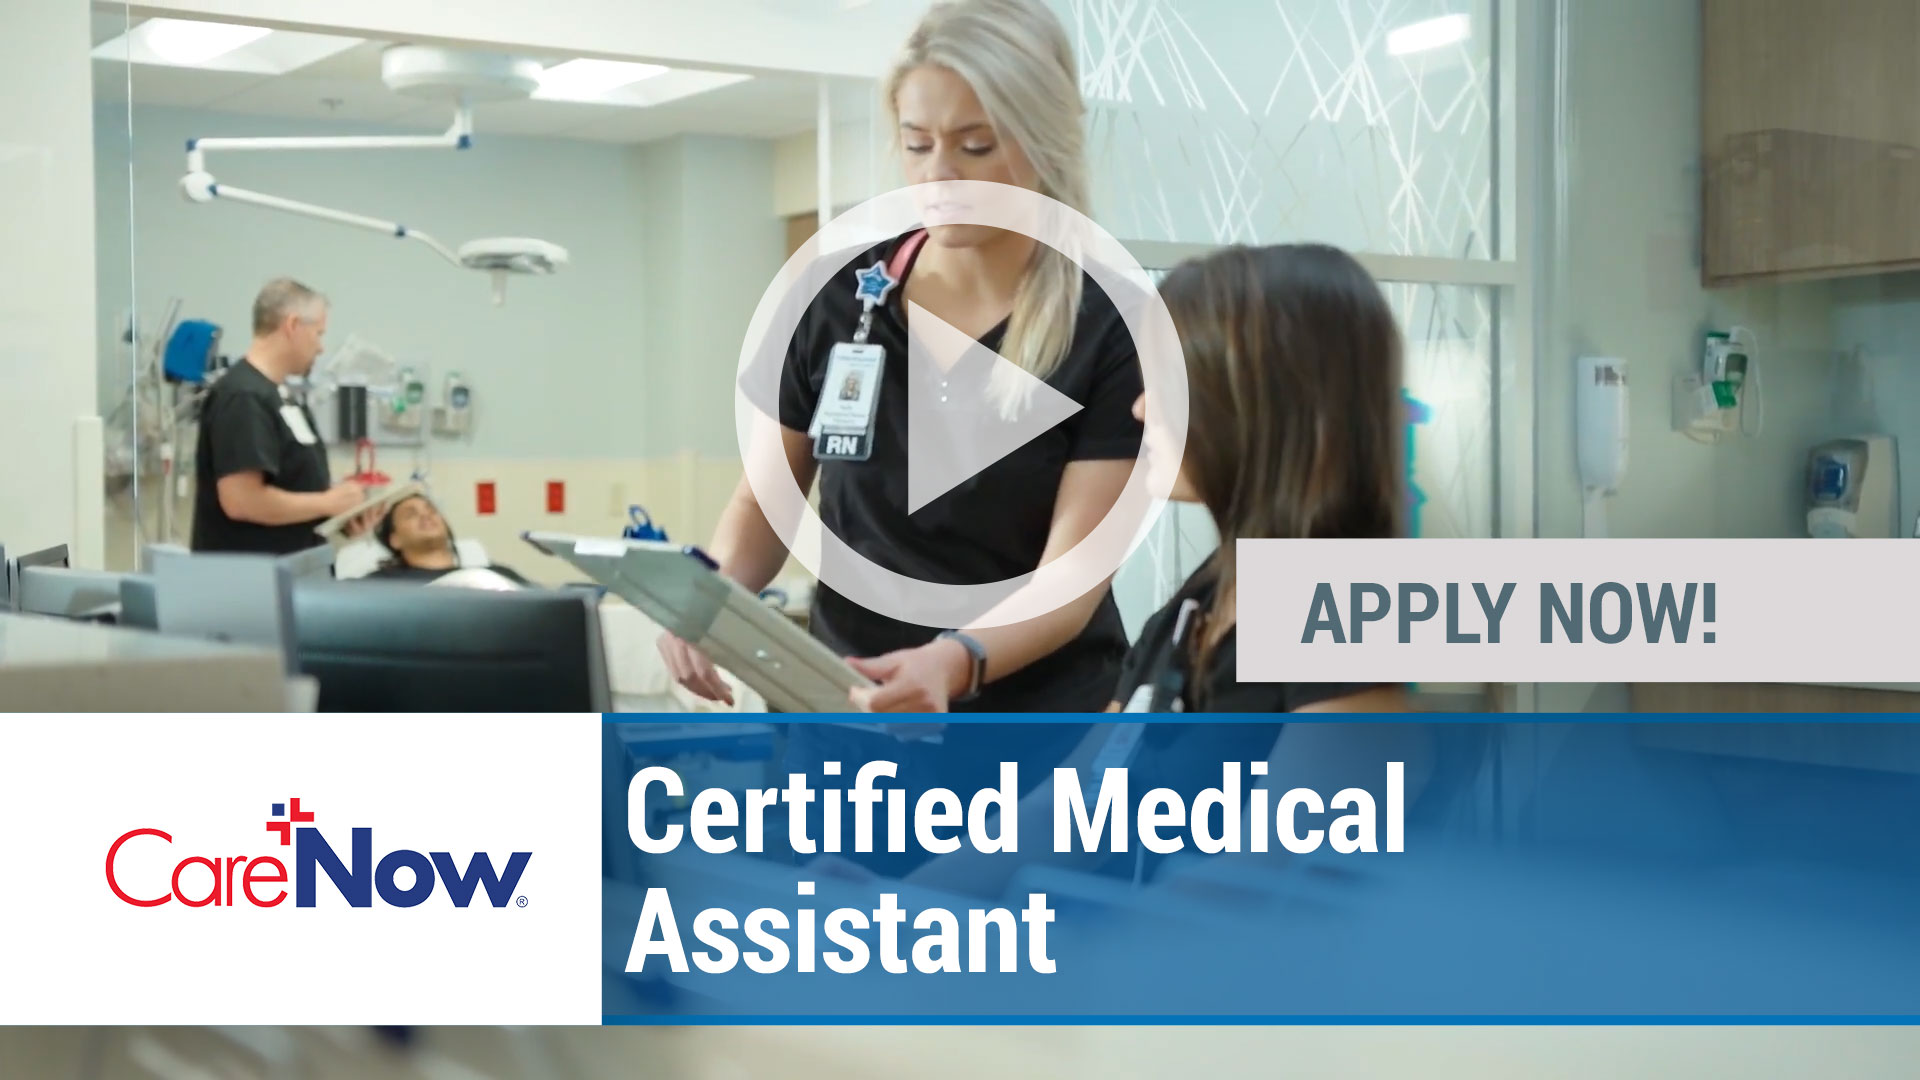 Watch our careers video for available job opening Certified Medical Assistant in Blue Springs, Missouri